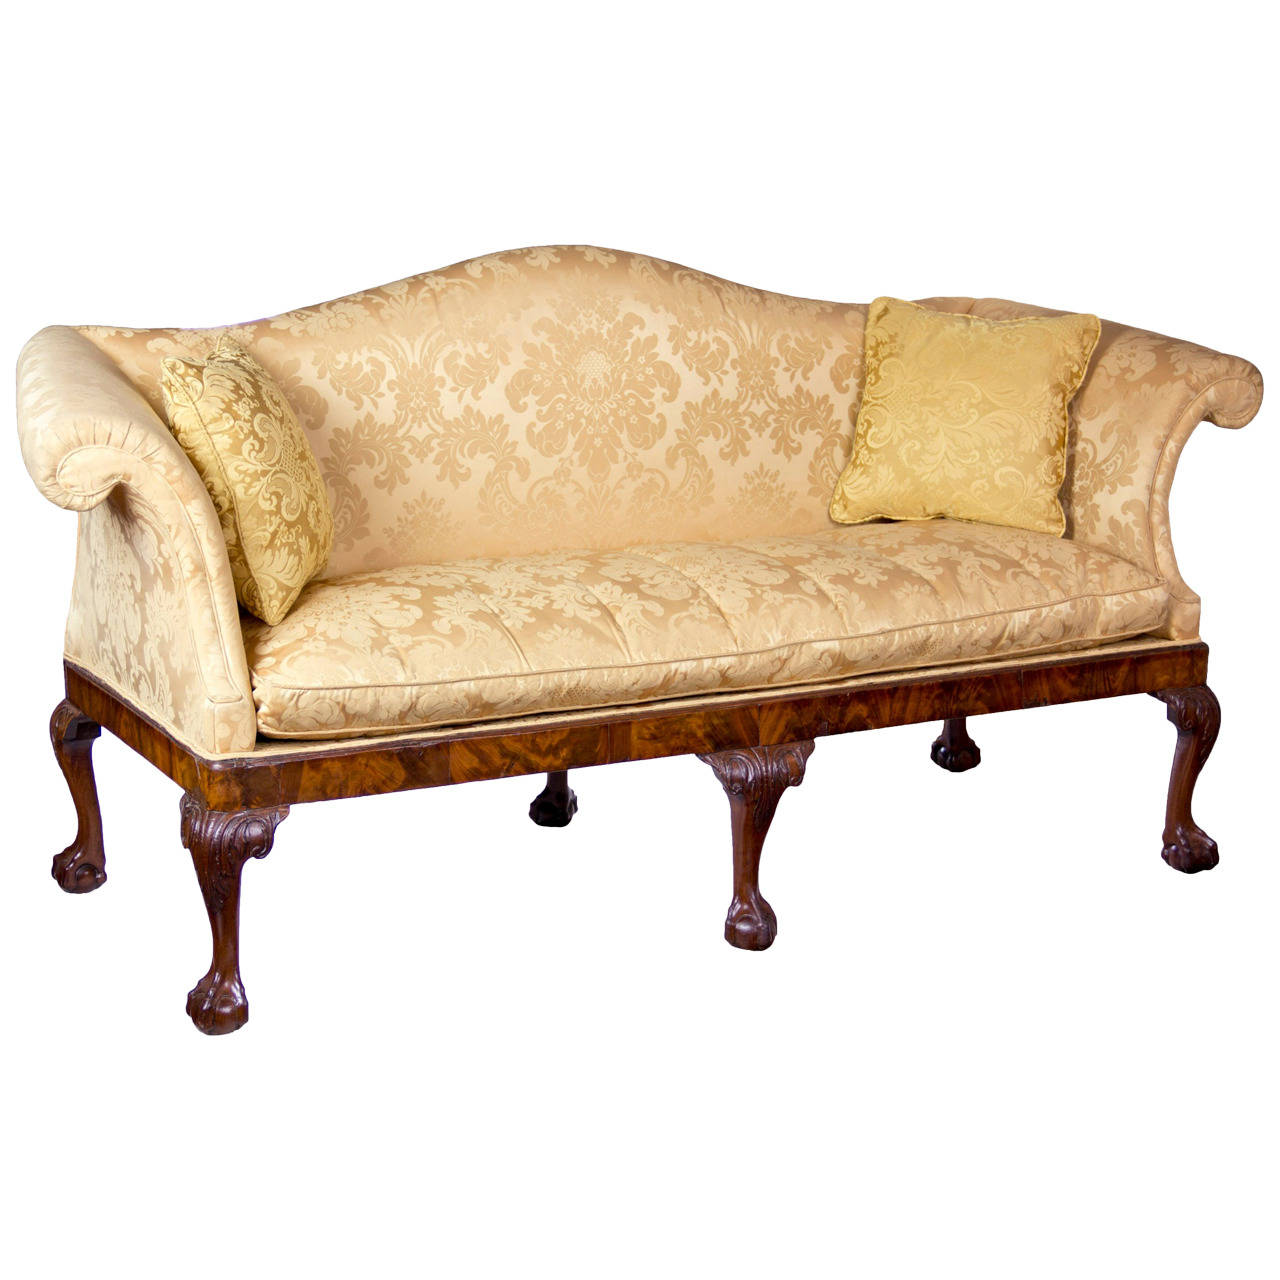 Full Size of Chippendale Style Sofa Table For Sale History Furniture Cover Uk Reproduction Slipcover Sofas Ethan Allen Lane 1stdibs Camelback Claw Ball Feet Irish Circa Sofa Chippendale Sofa